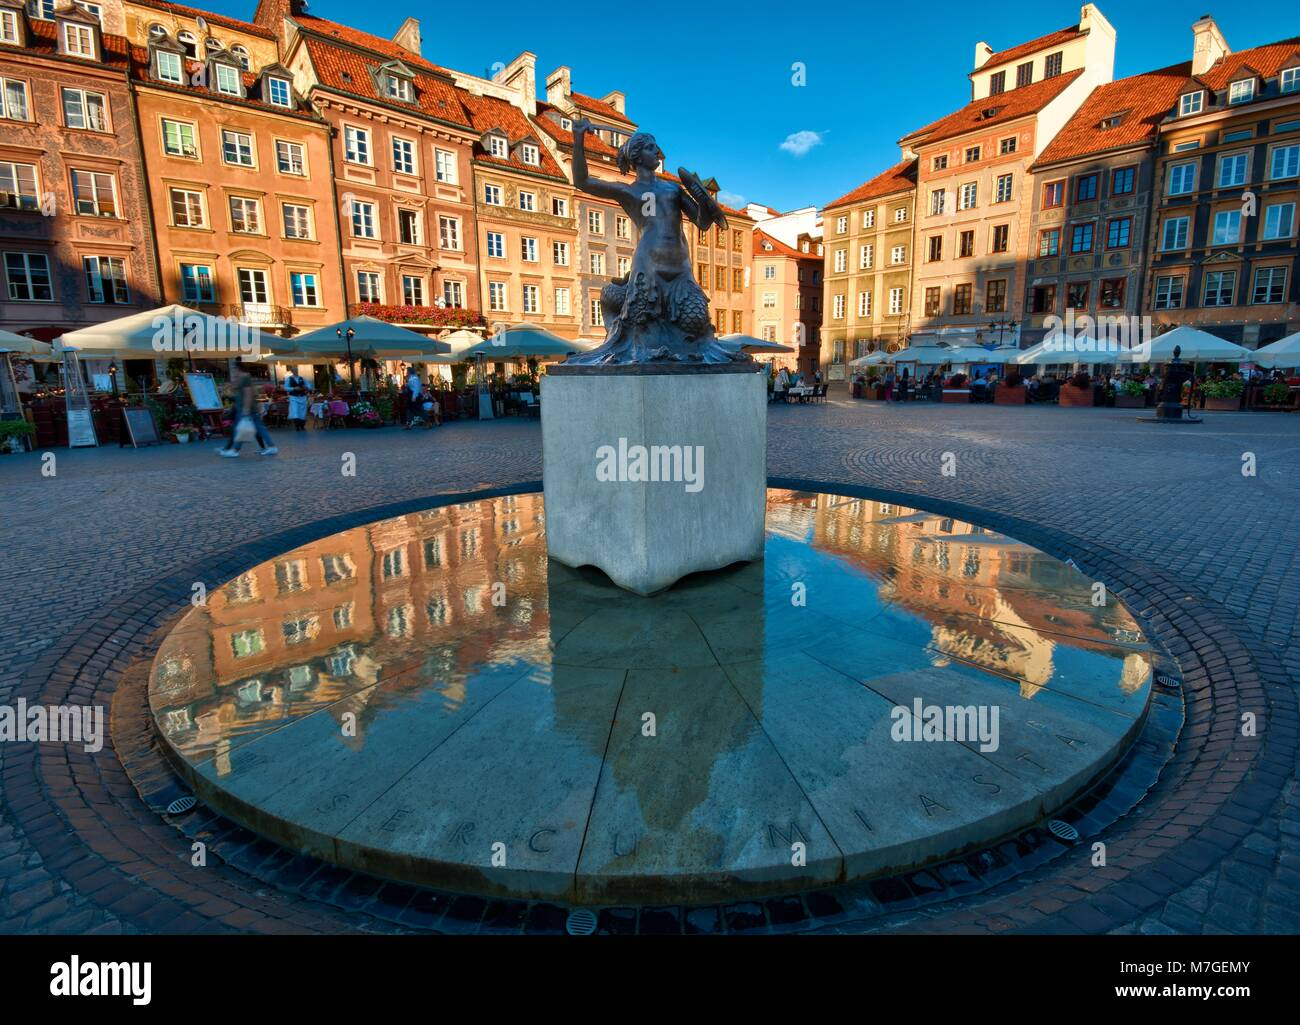 Symbol of warsaw stock photos symbol of warsaw stock images alamy statue of mermaid syrenka symbol of warsaw at the old town market square biocorpaavc